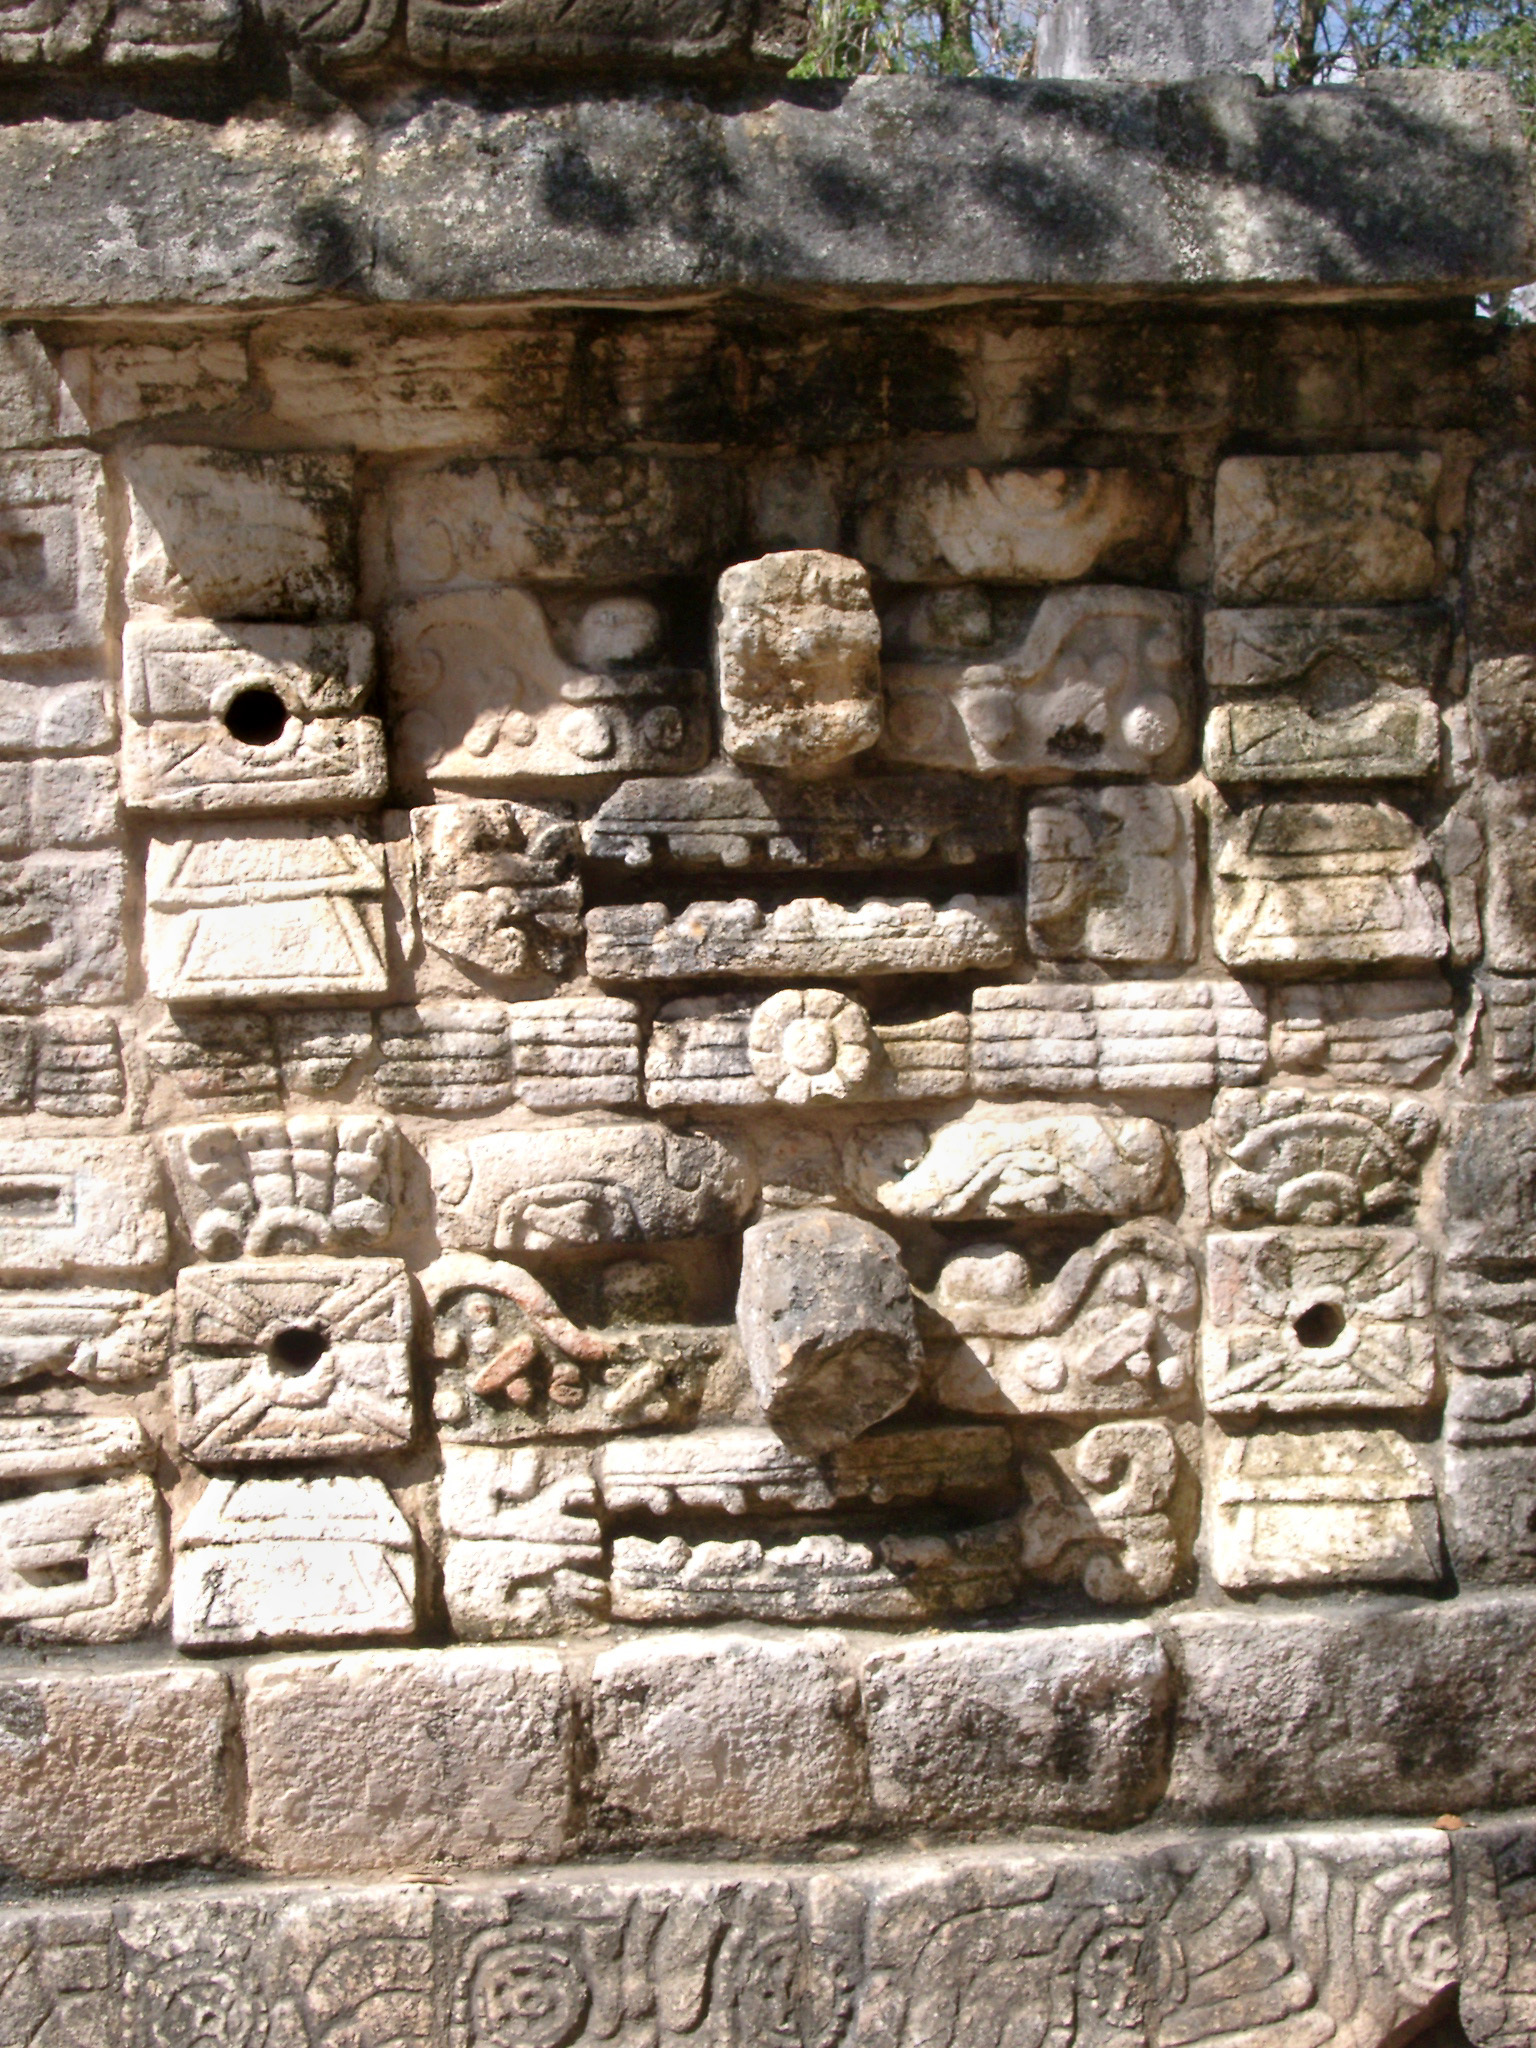 Old carved stone wall with tribal patterns in Chitzen Itza Mayan ruins in the Yucatan Province, Mexico